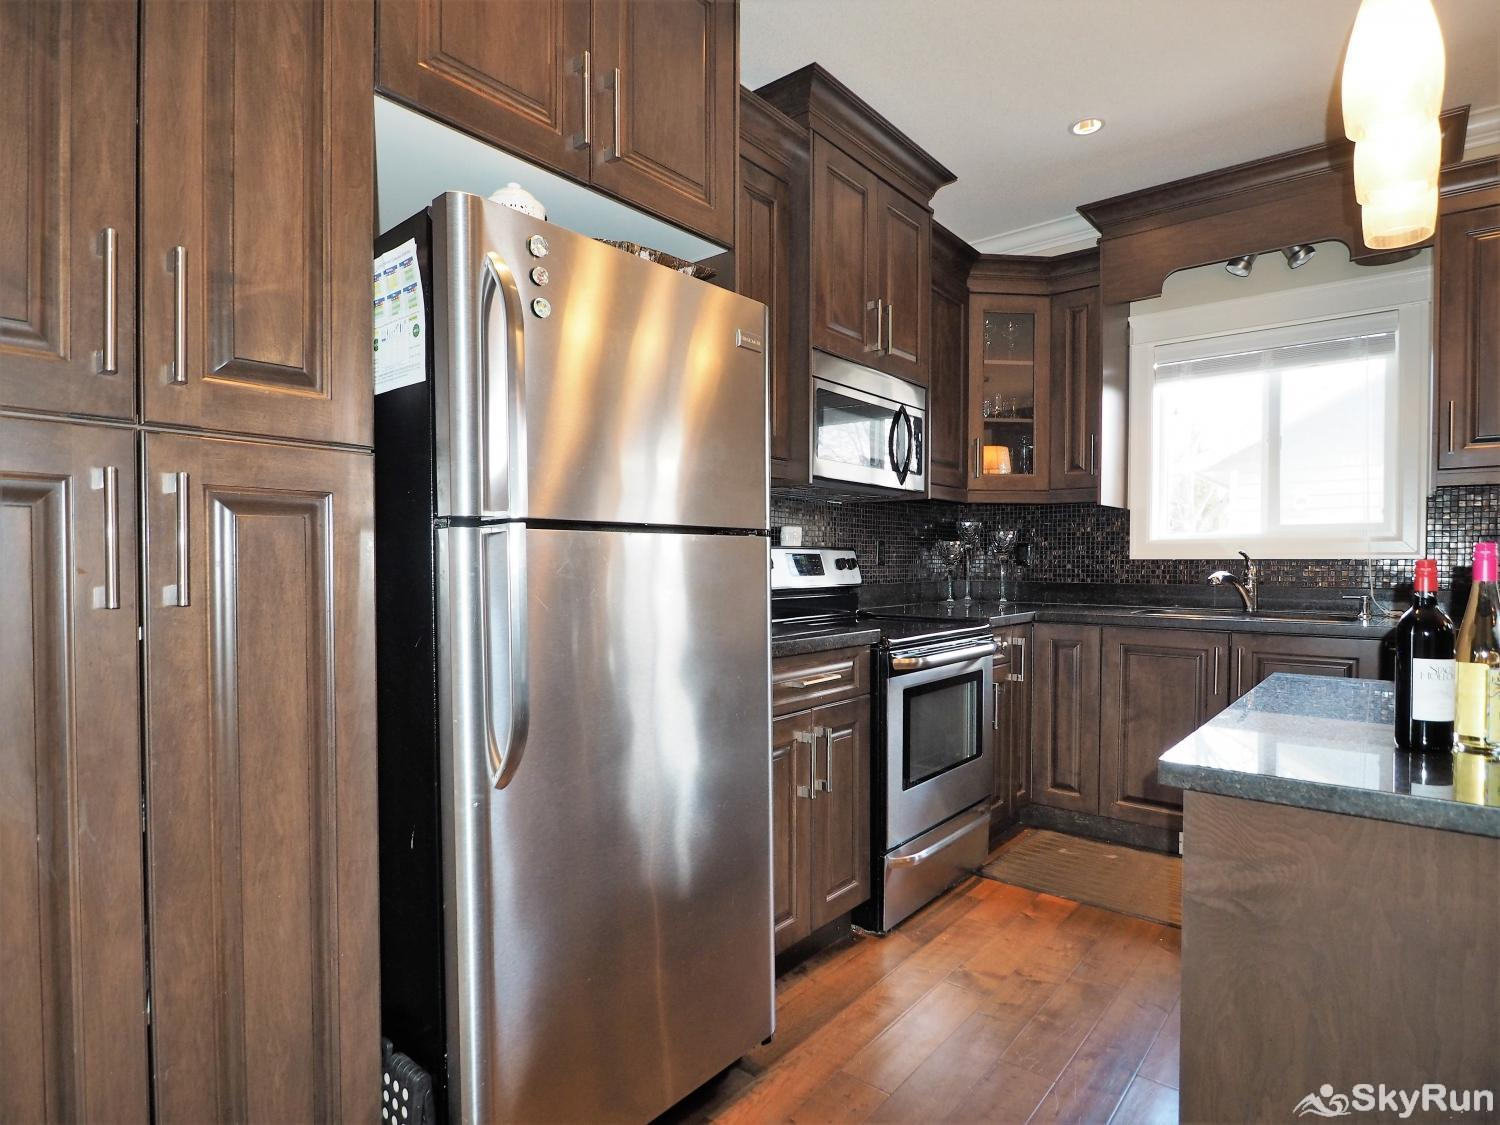 Old Summerland 4 bedroom townhouse The large fridge in the main kitchen provides space for everything you need